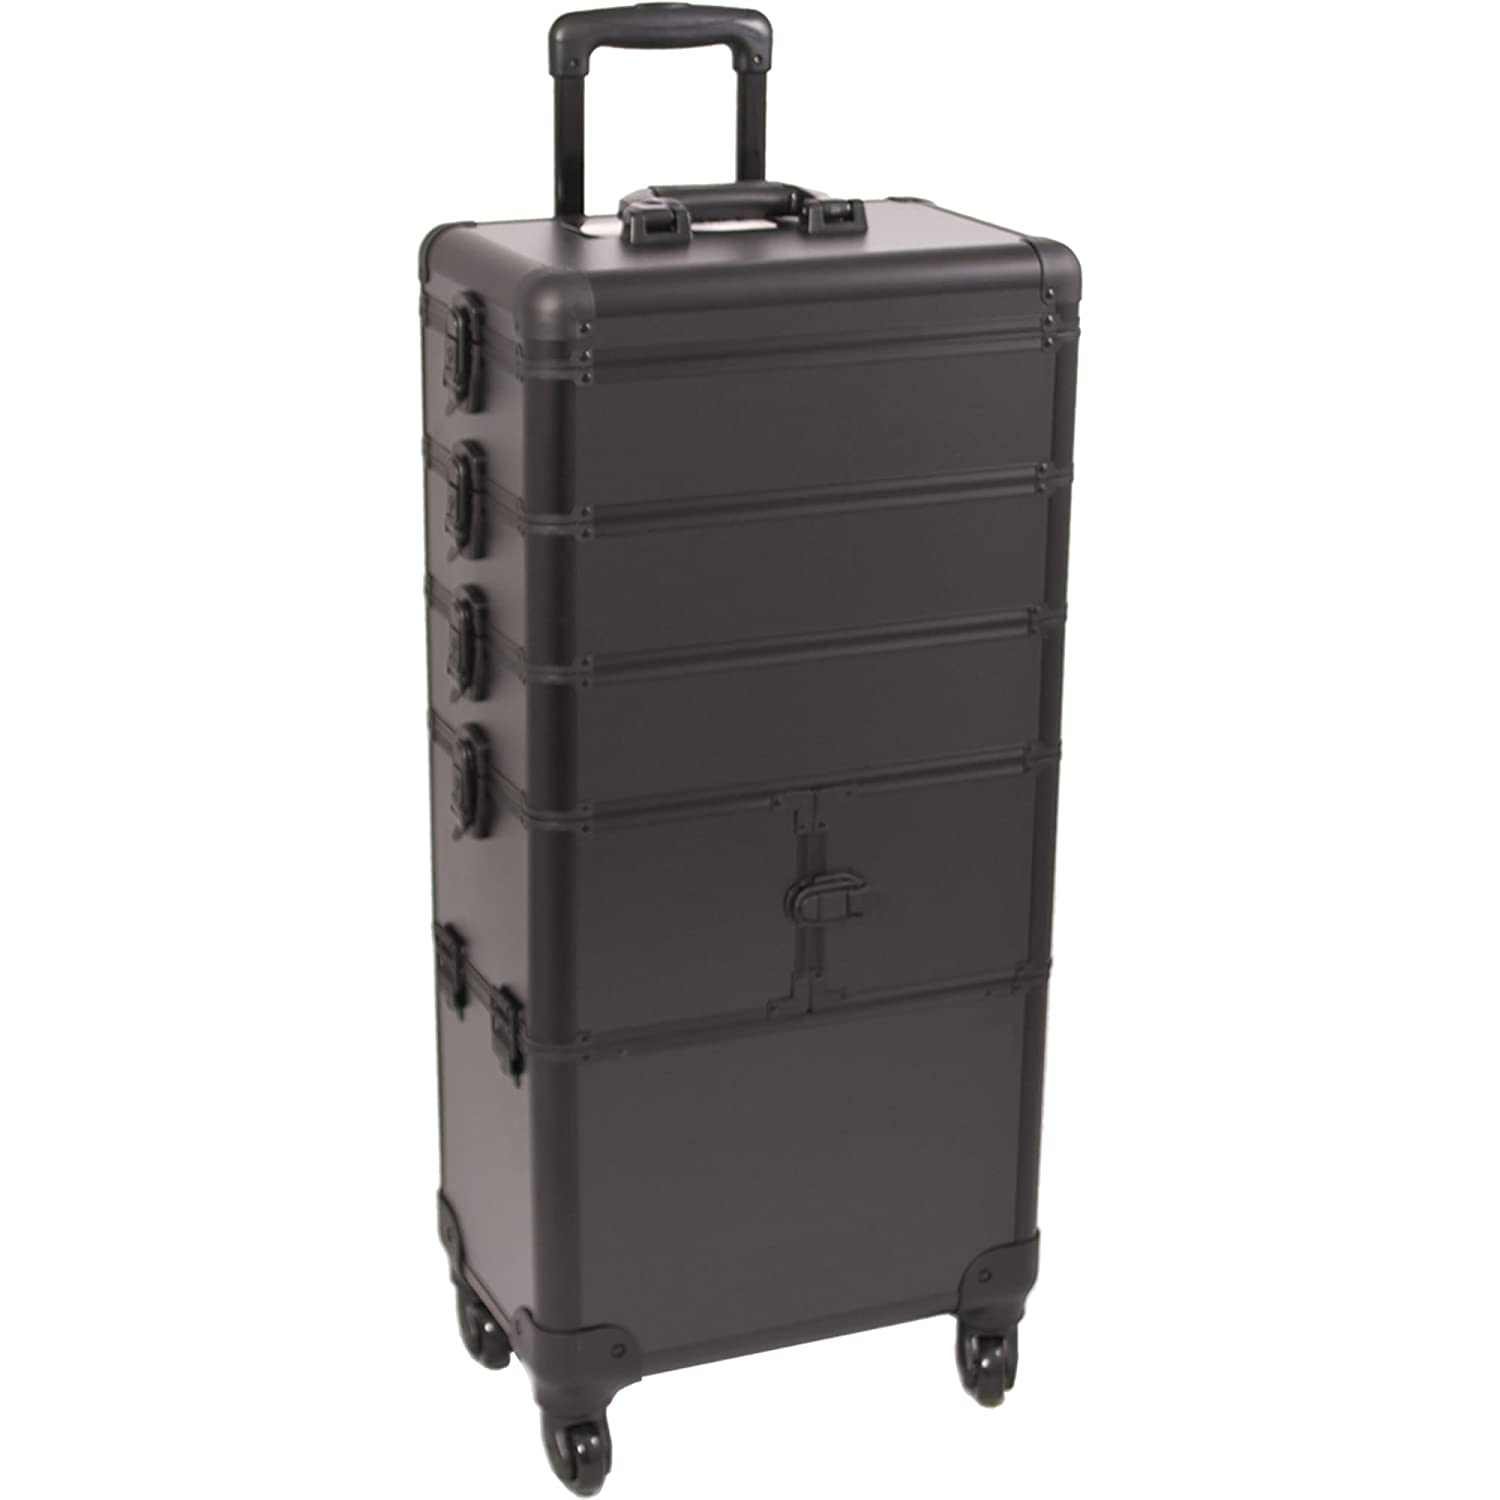 SUNRISE Makeup Rolling Case 4 in 1 Professional Organizer I3364 Aluminum, 3 Stackable Trays and Two 3 Tier Trays, 4 Wheel Spinner, Black Matte